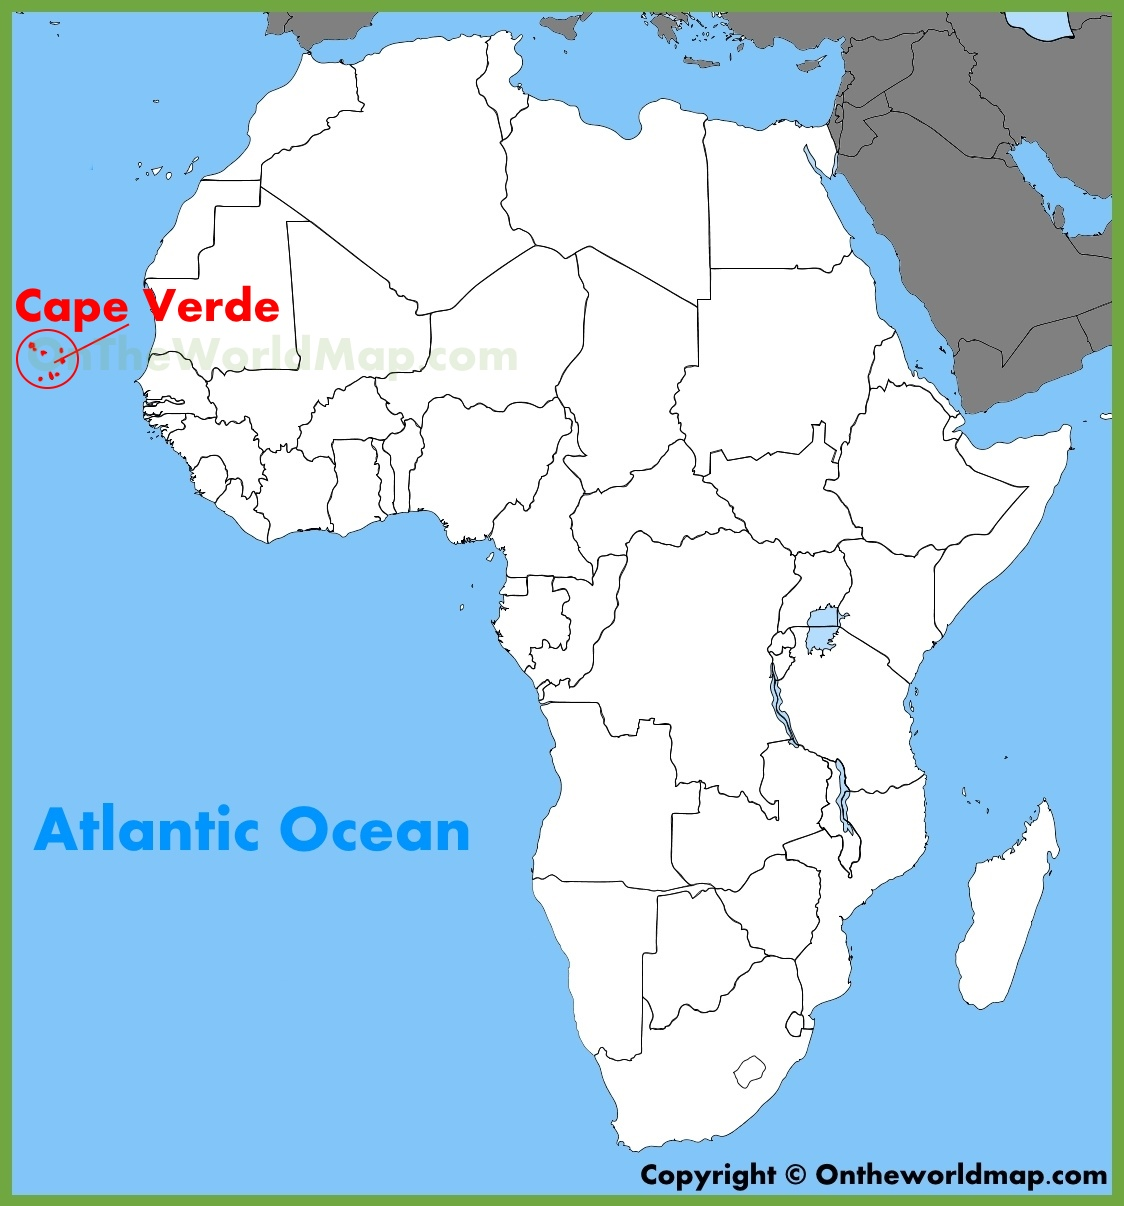 Cape Verde location on the Africa map